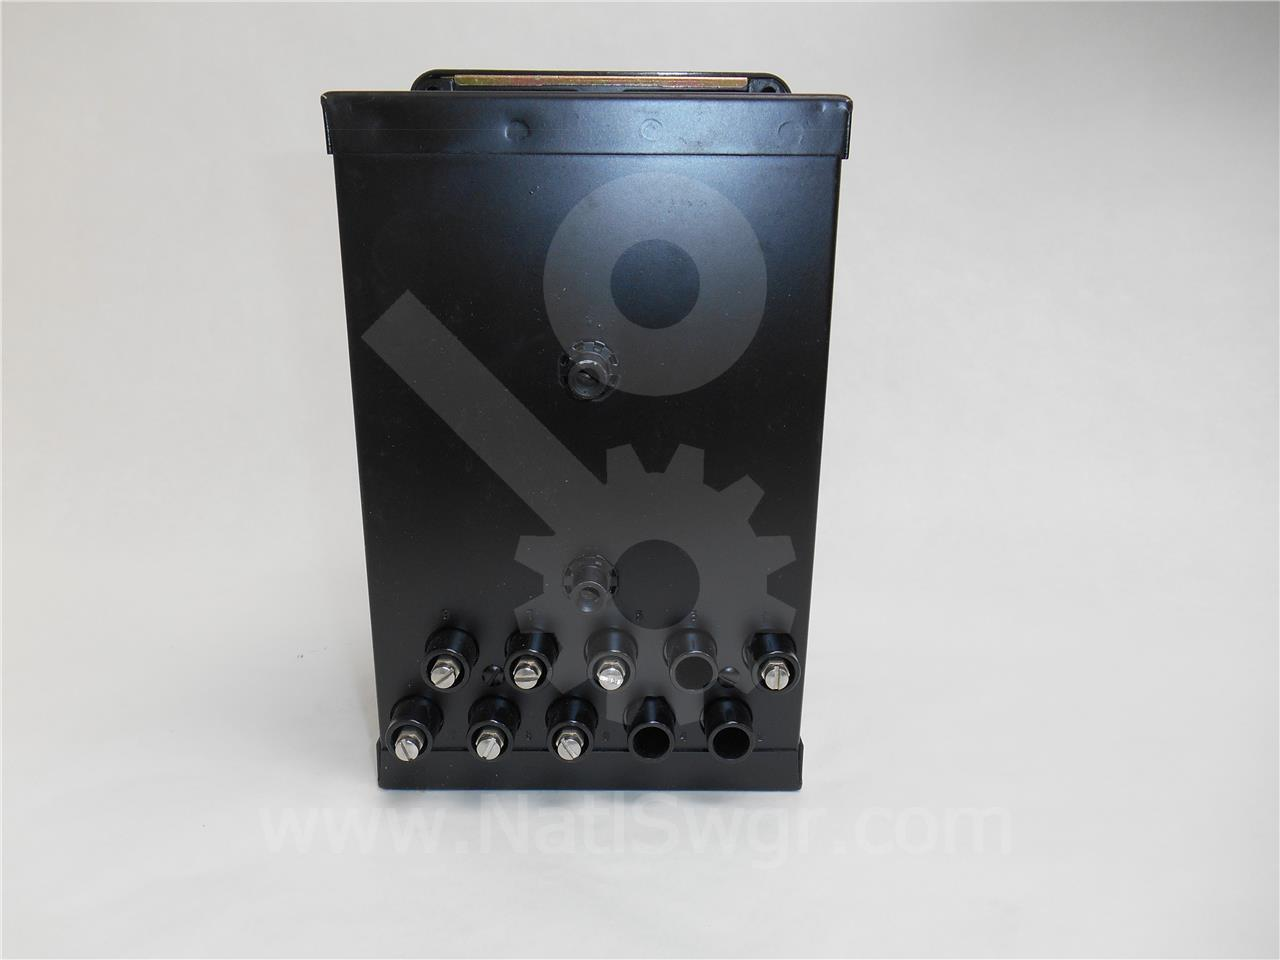 290B892A10 Westinghouse CA PERCENTAGE DIFFERENTIAL RELAY FOR GENERATOR PROTECTION, INVERSE